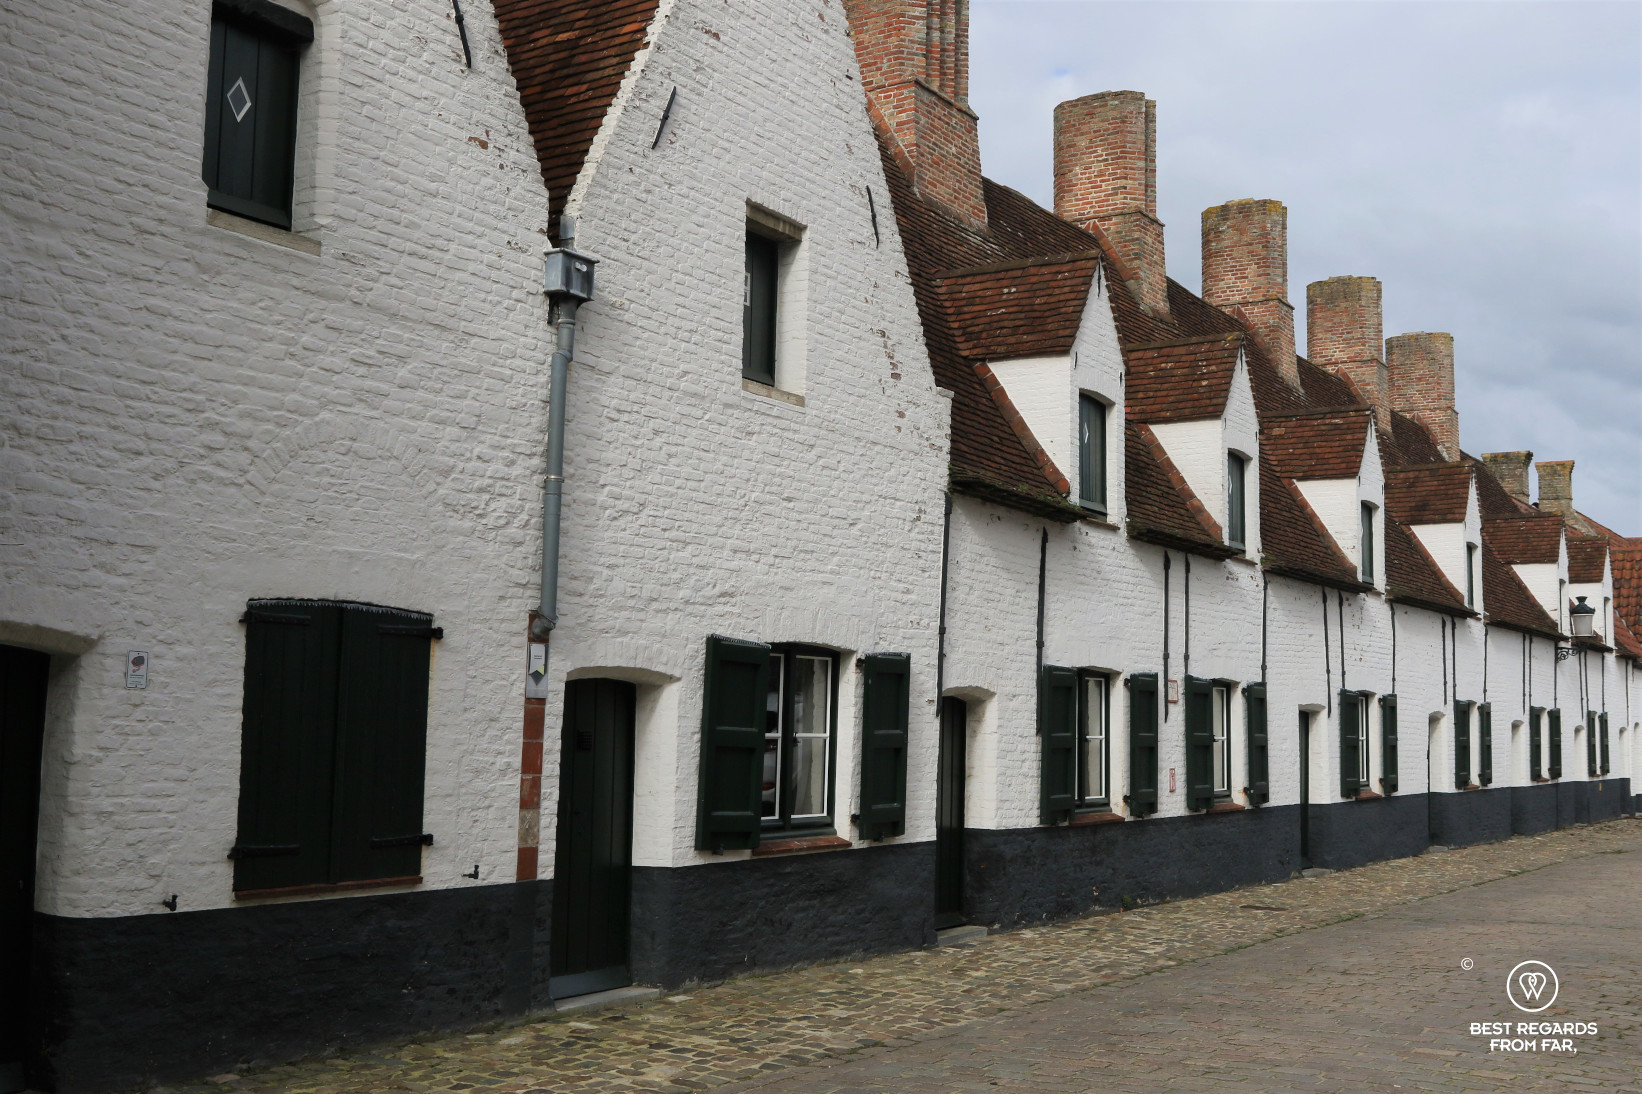 The typical white alms-houses in Bruges, Belgium